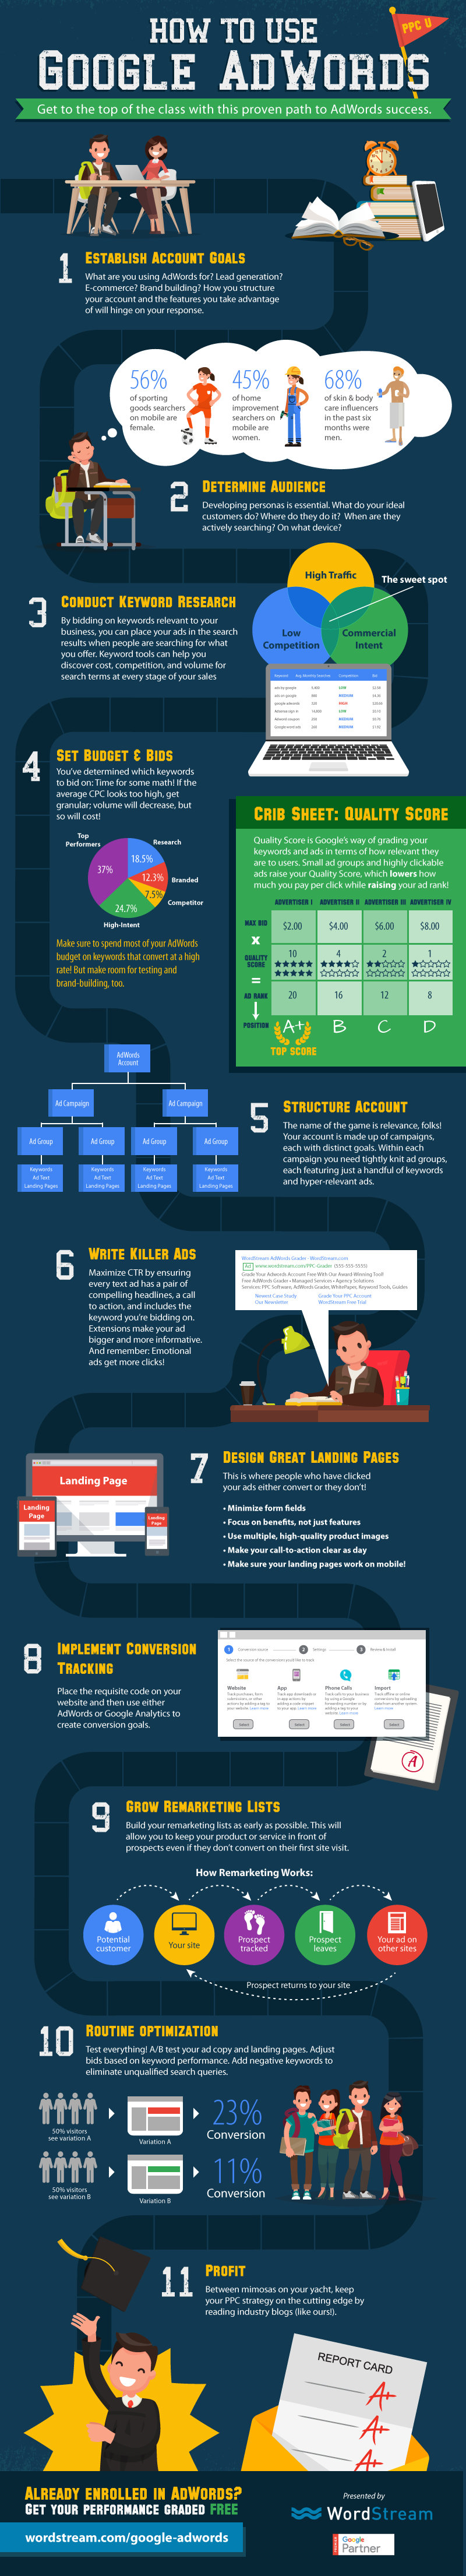 How to Use Google AdWords: 11 Steps to Success [Infographic]